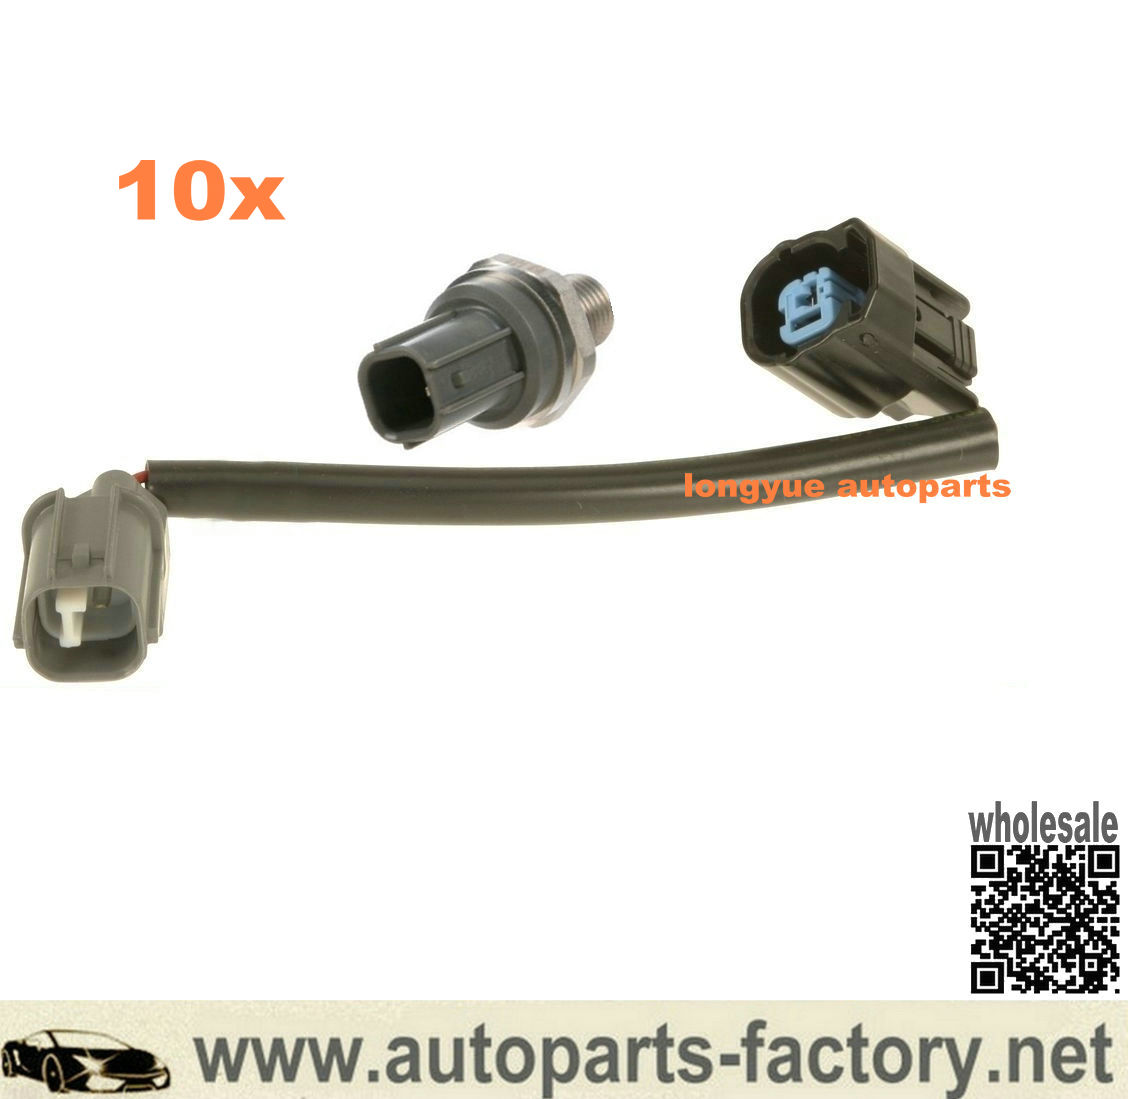 longyue 10set Honda / Acura Knock Sensor & Wire Harness Connector Kit 30531-P8F-A00,30530-P8F-A01